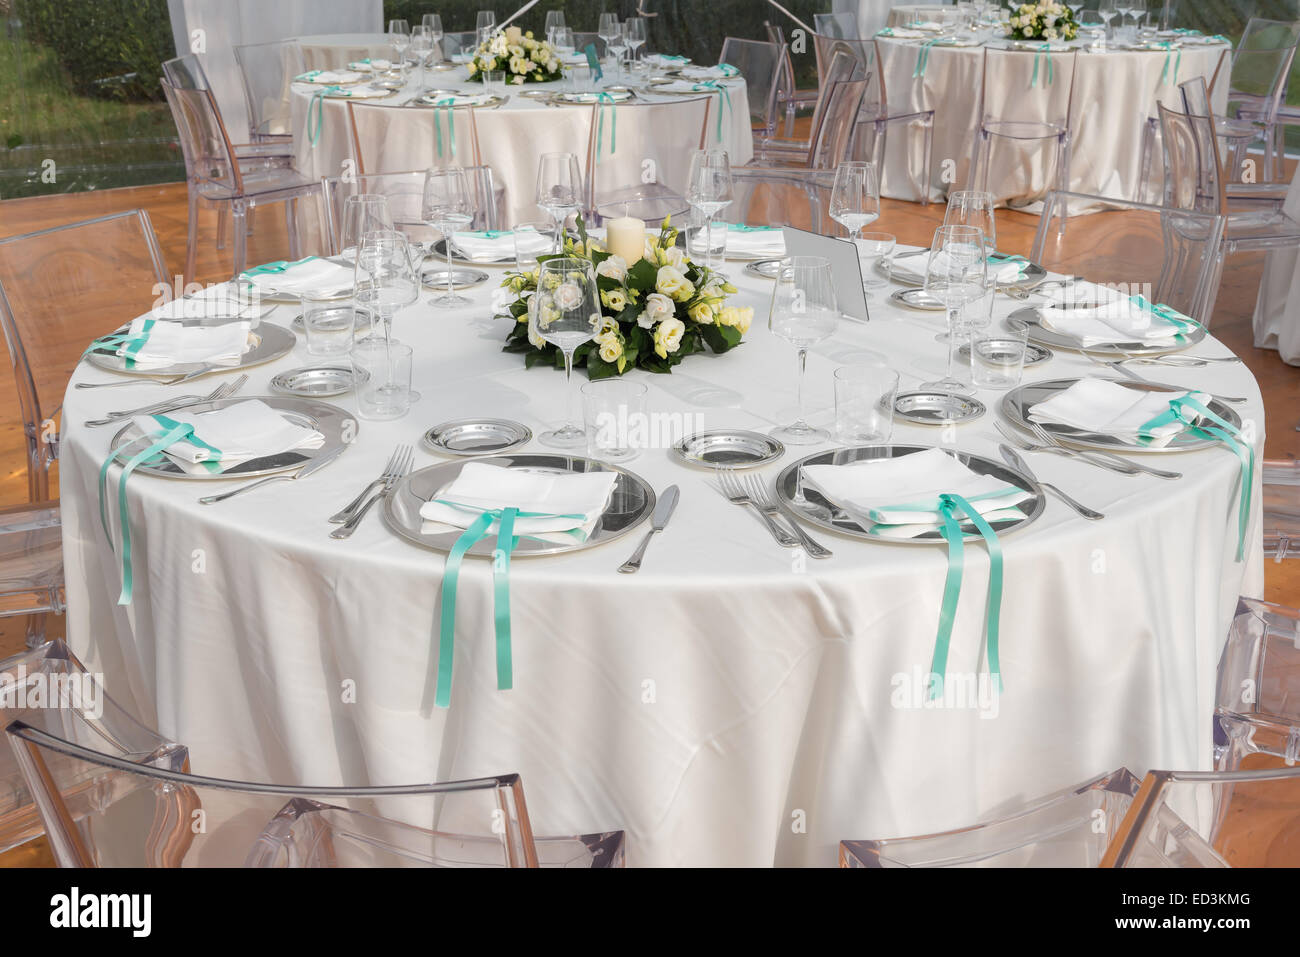 Table set for an event party or wedding reception - Stock Image